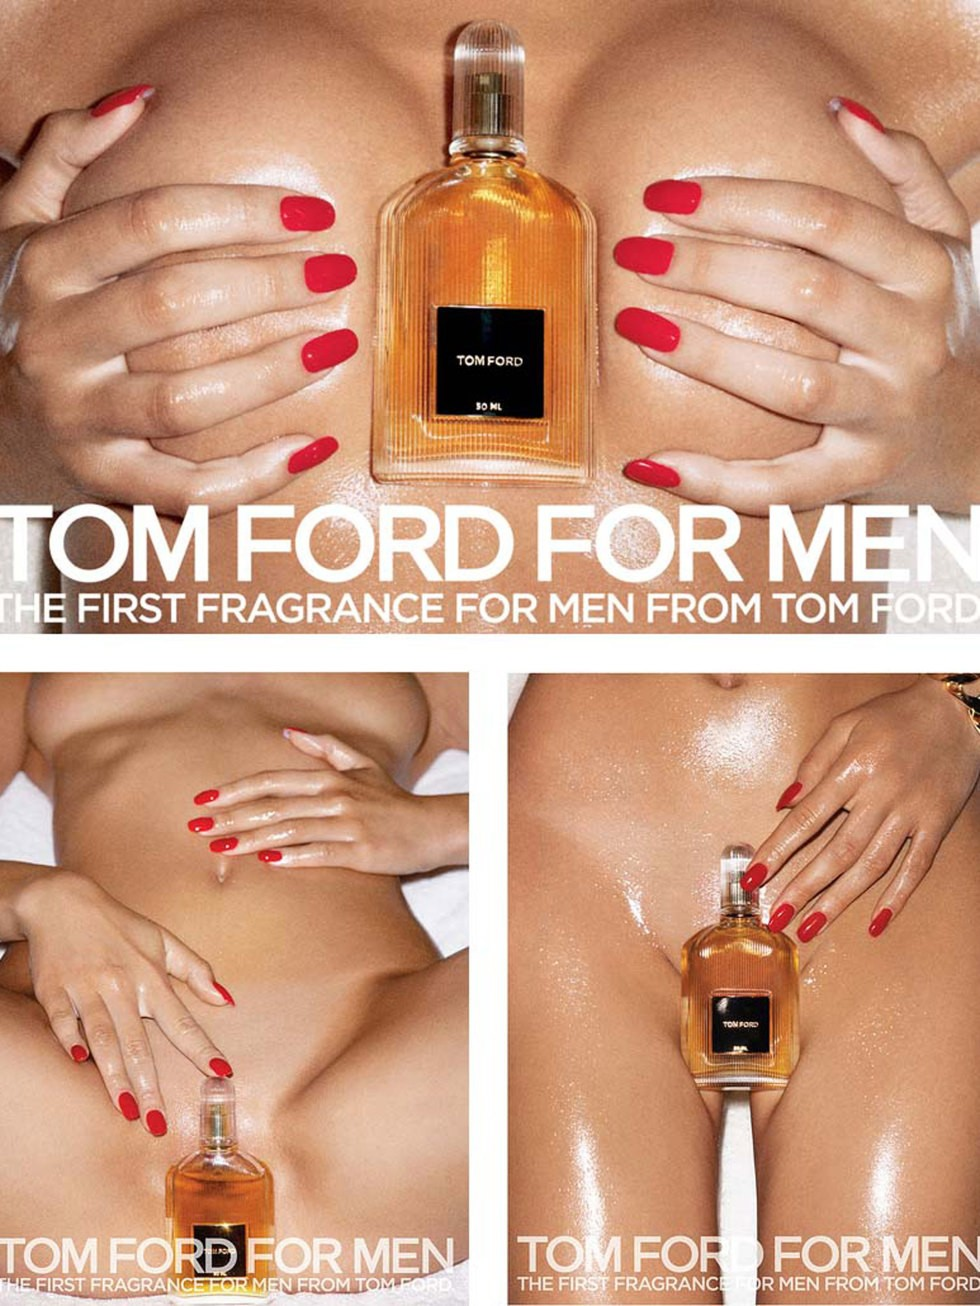 nrm_1406743142-cos-07-tom-ford